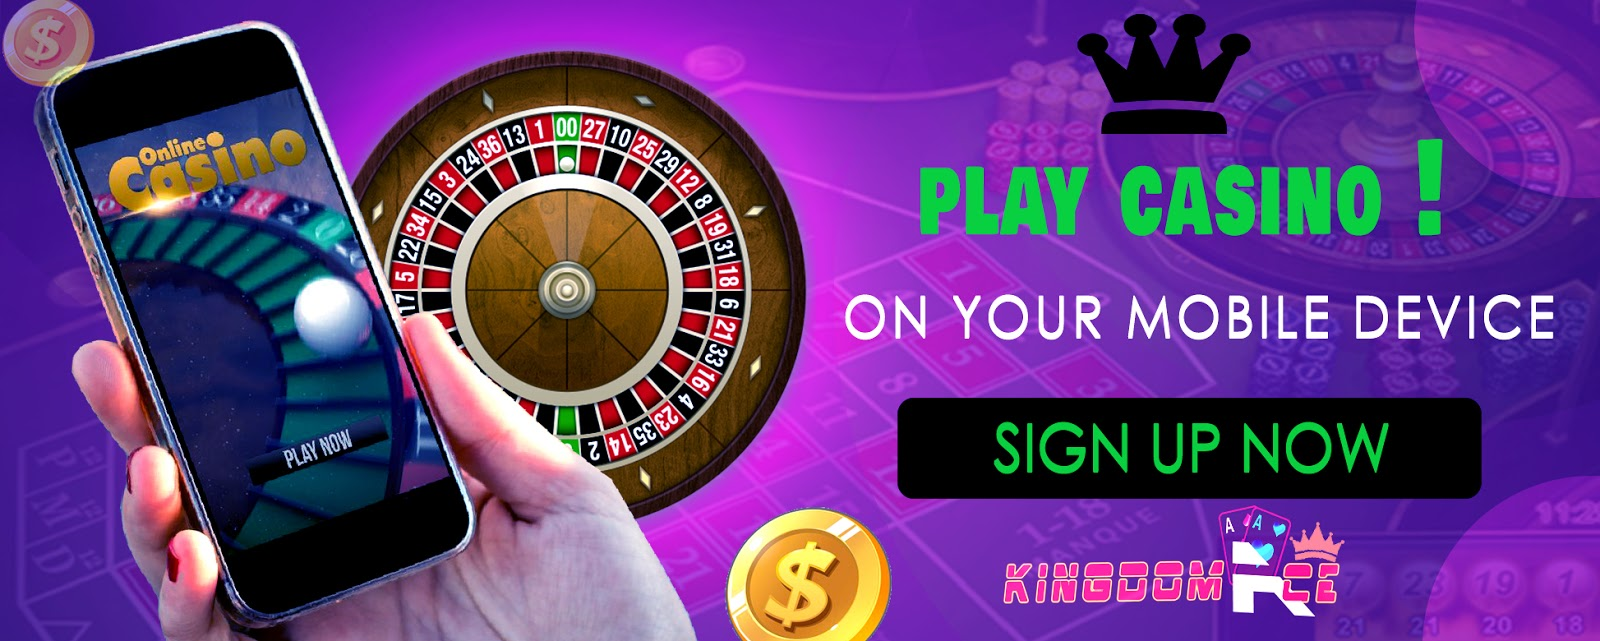 Hack a online casino, Live football betting